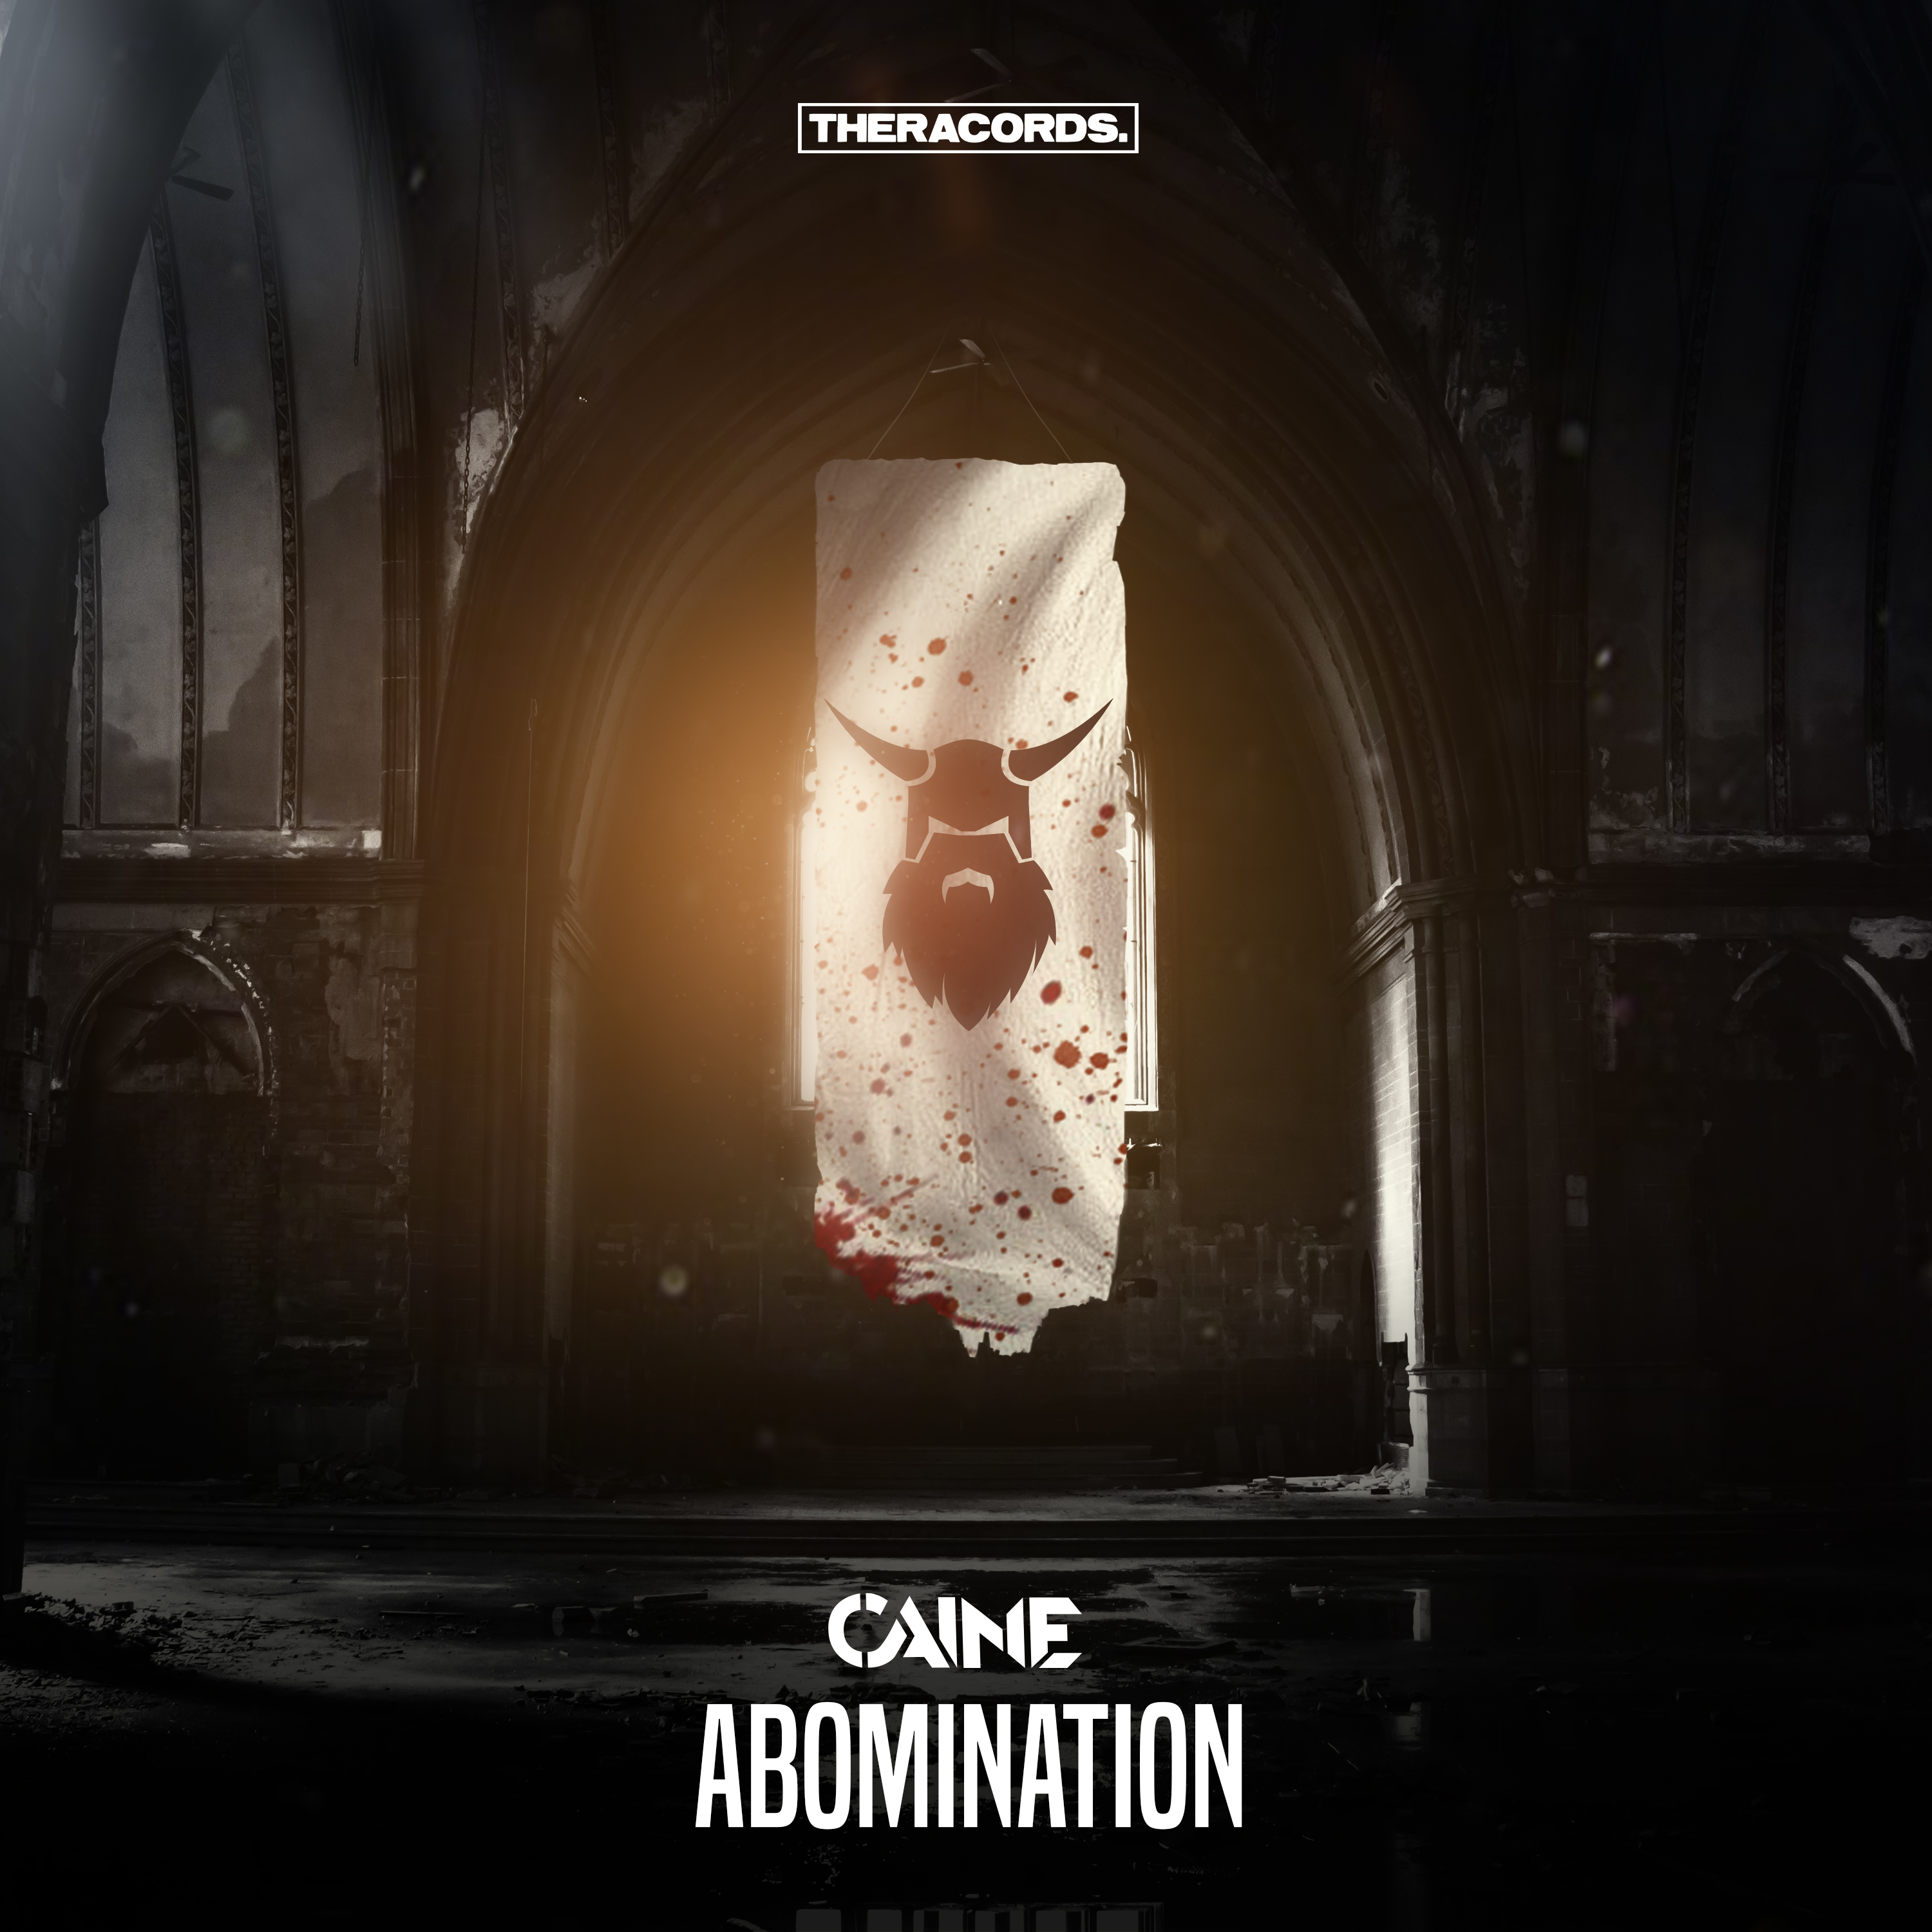 Caine - Abomination [THERACORDS] THER201